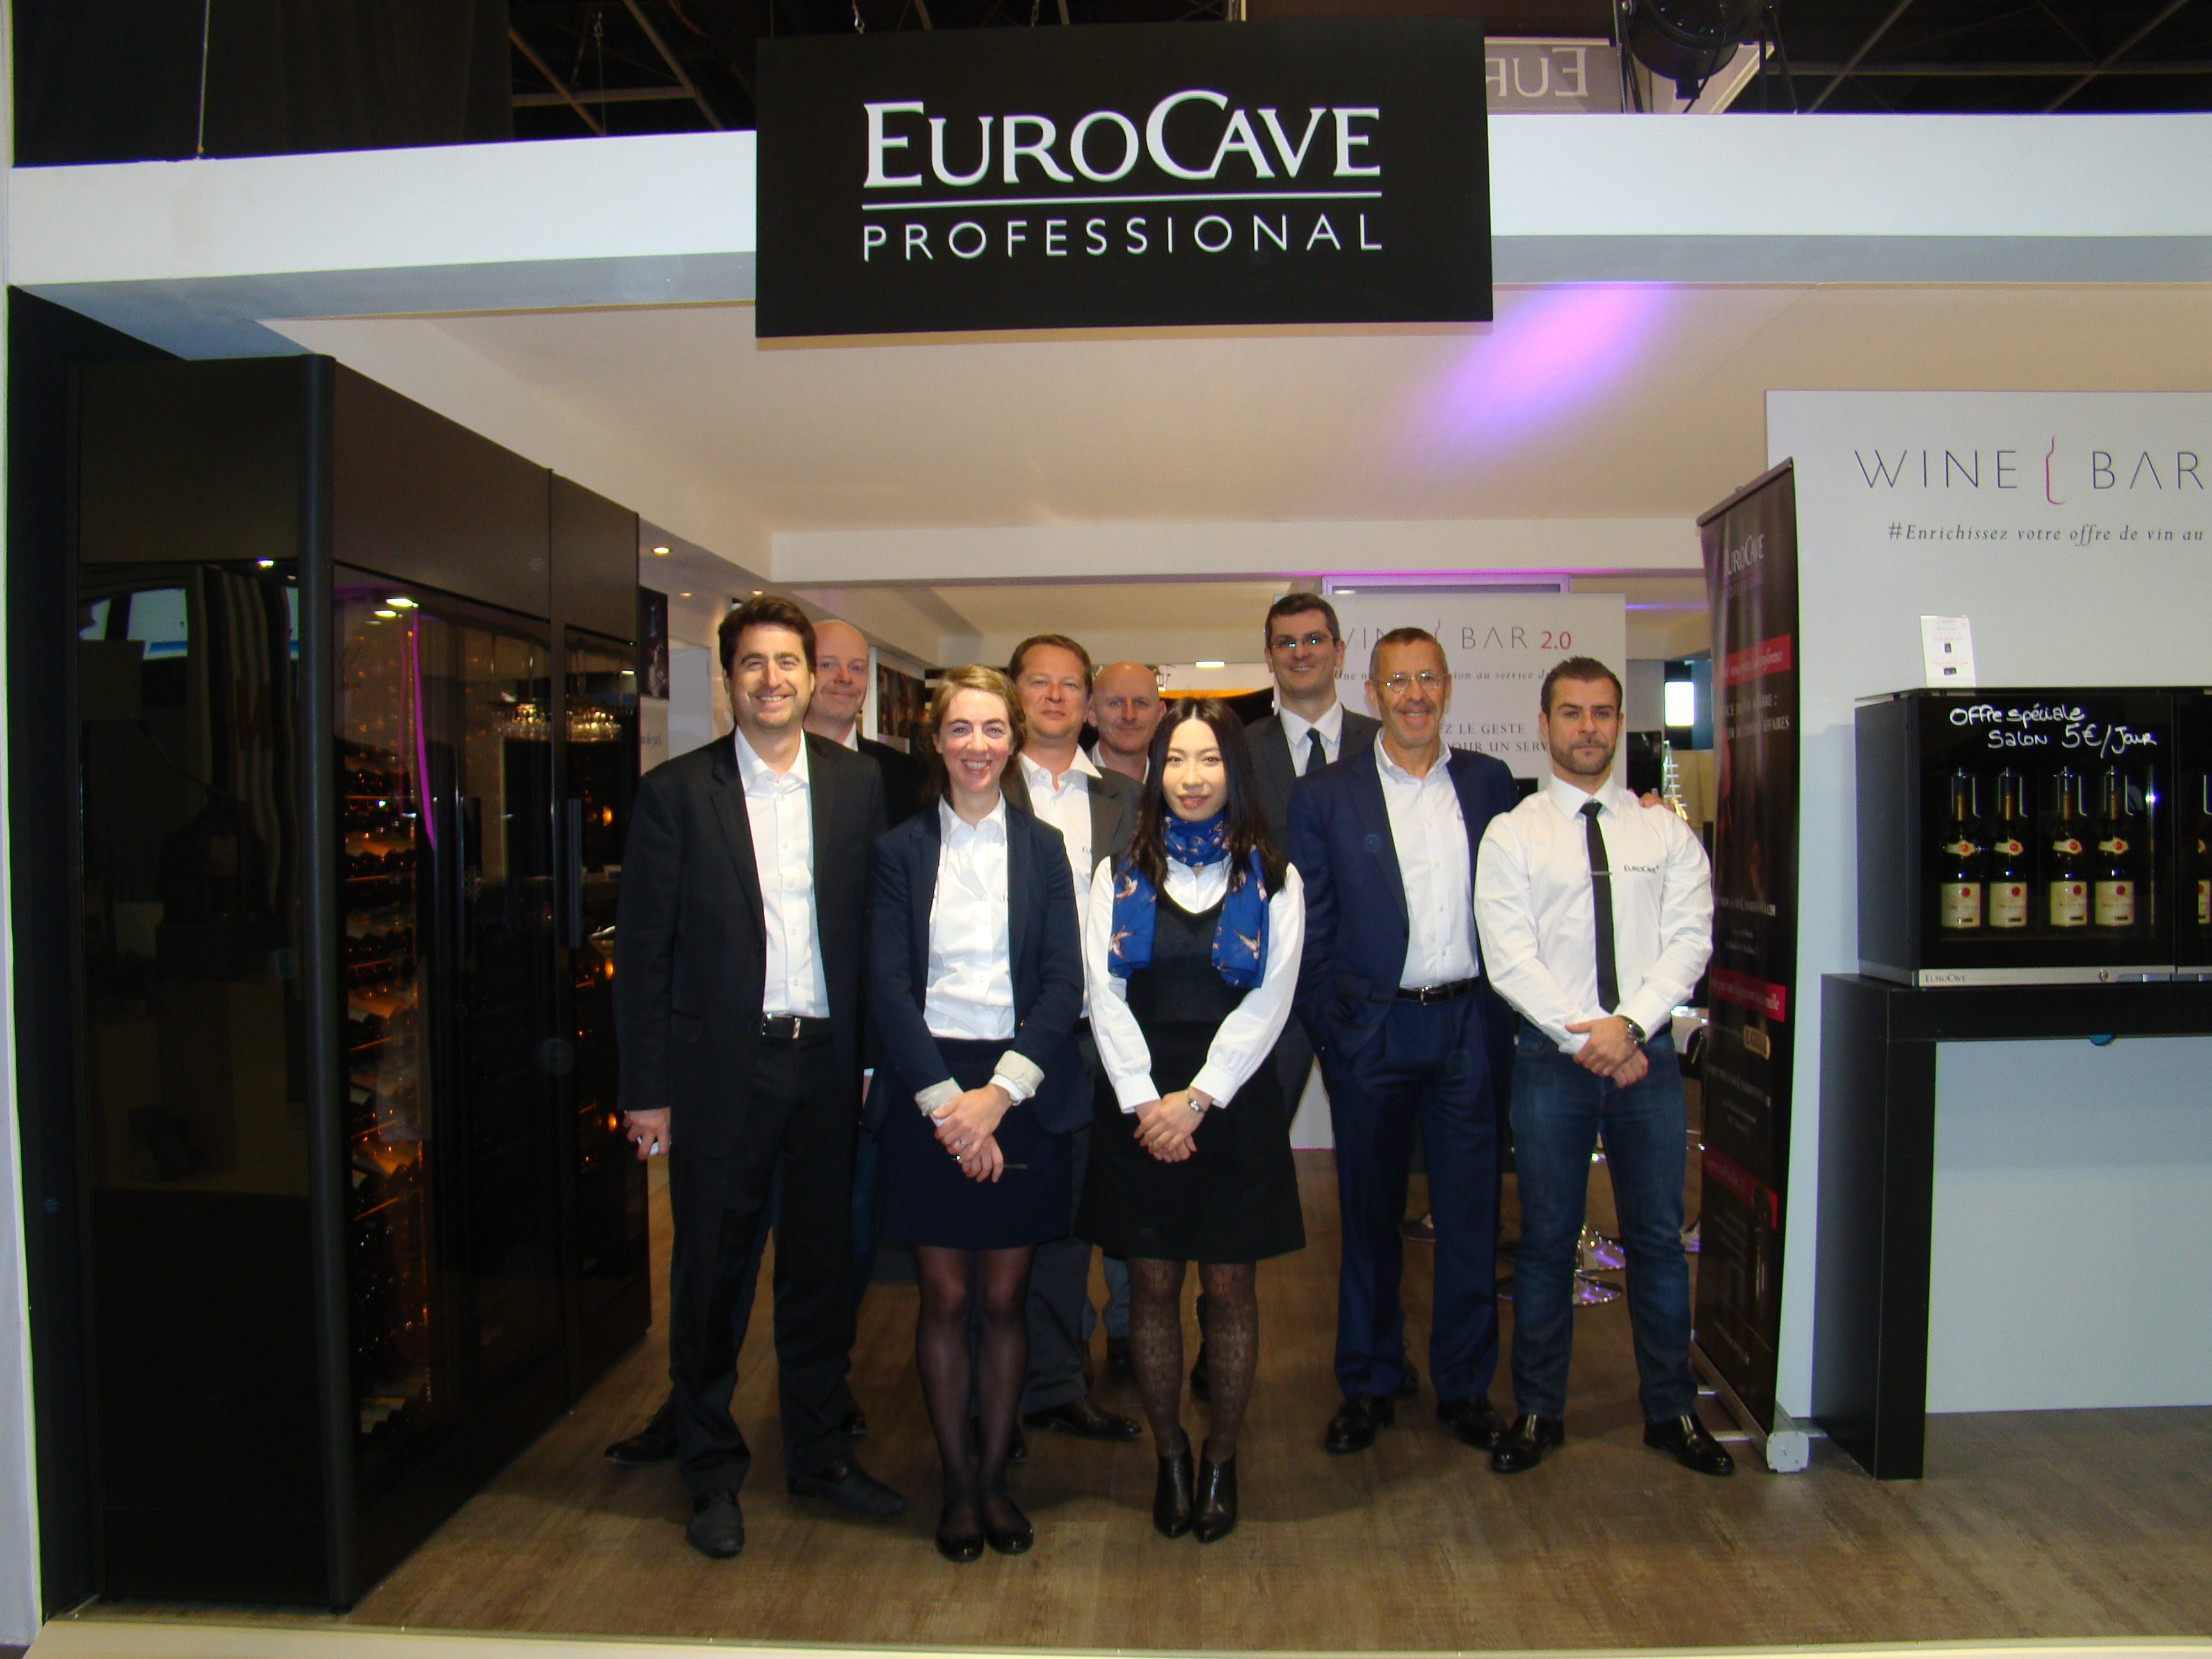 EuroCave booth Equip'hotel team